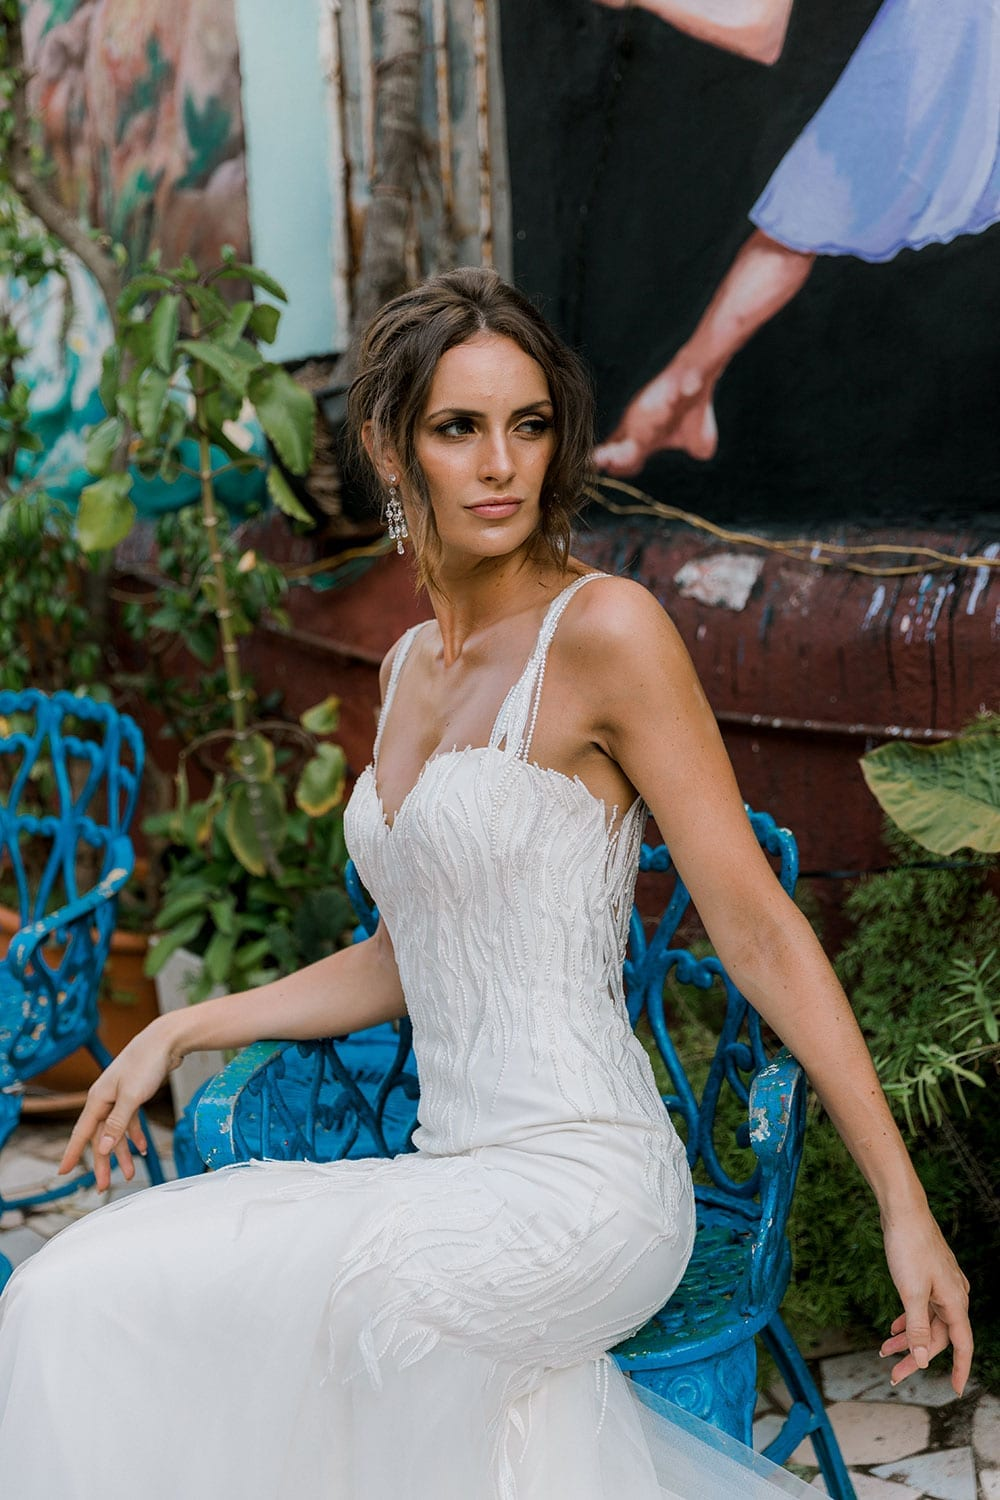 Model wearing Vinka Design Irina Wedding Dress, a n Embroidered Mermaid Lace Wedding Gown in front of colourful mural in Havana close up seated